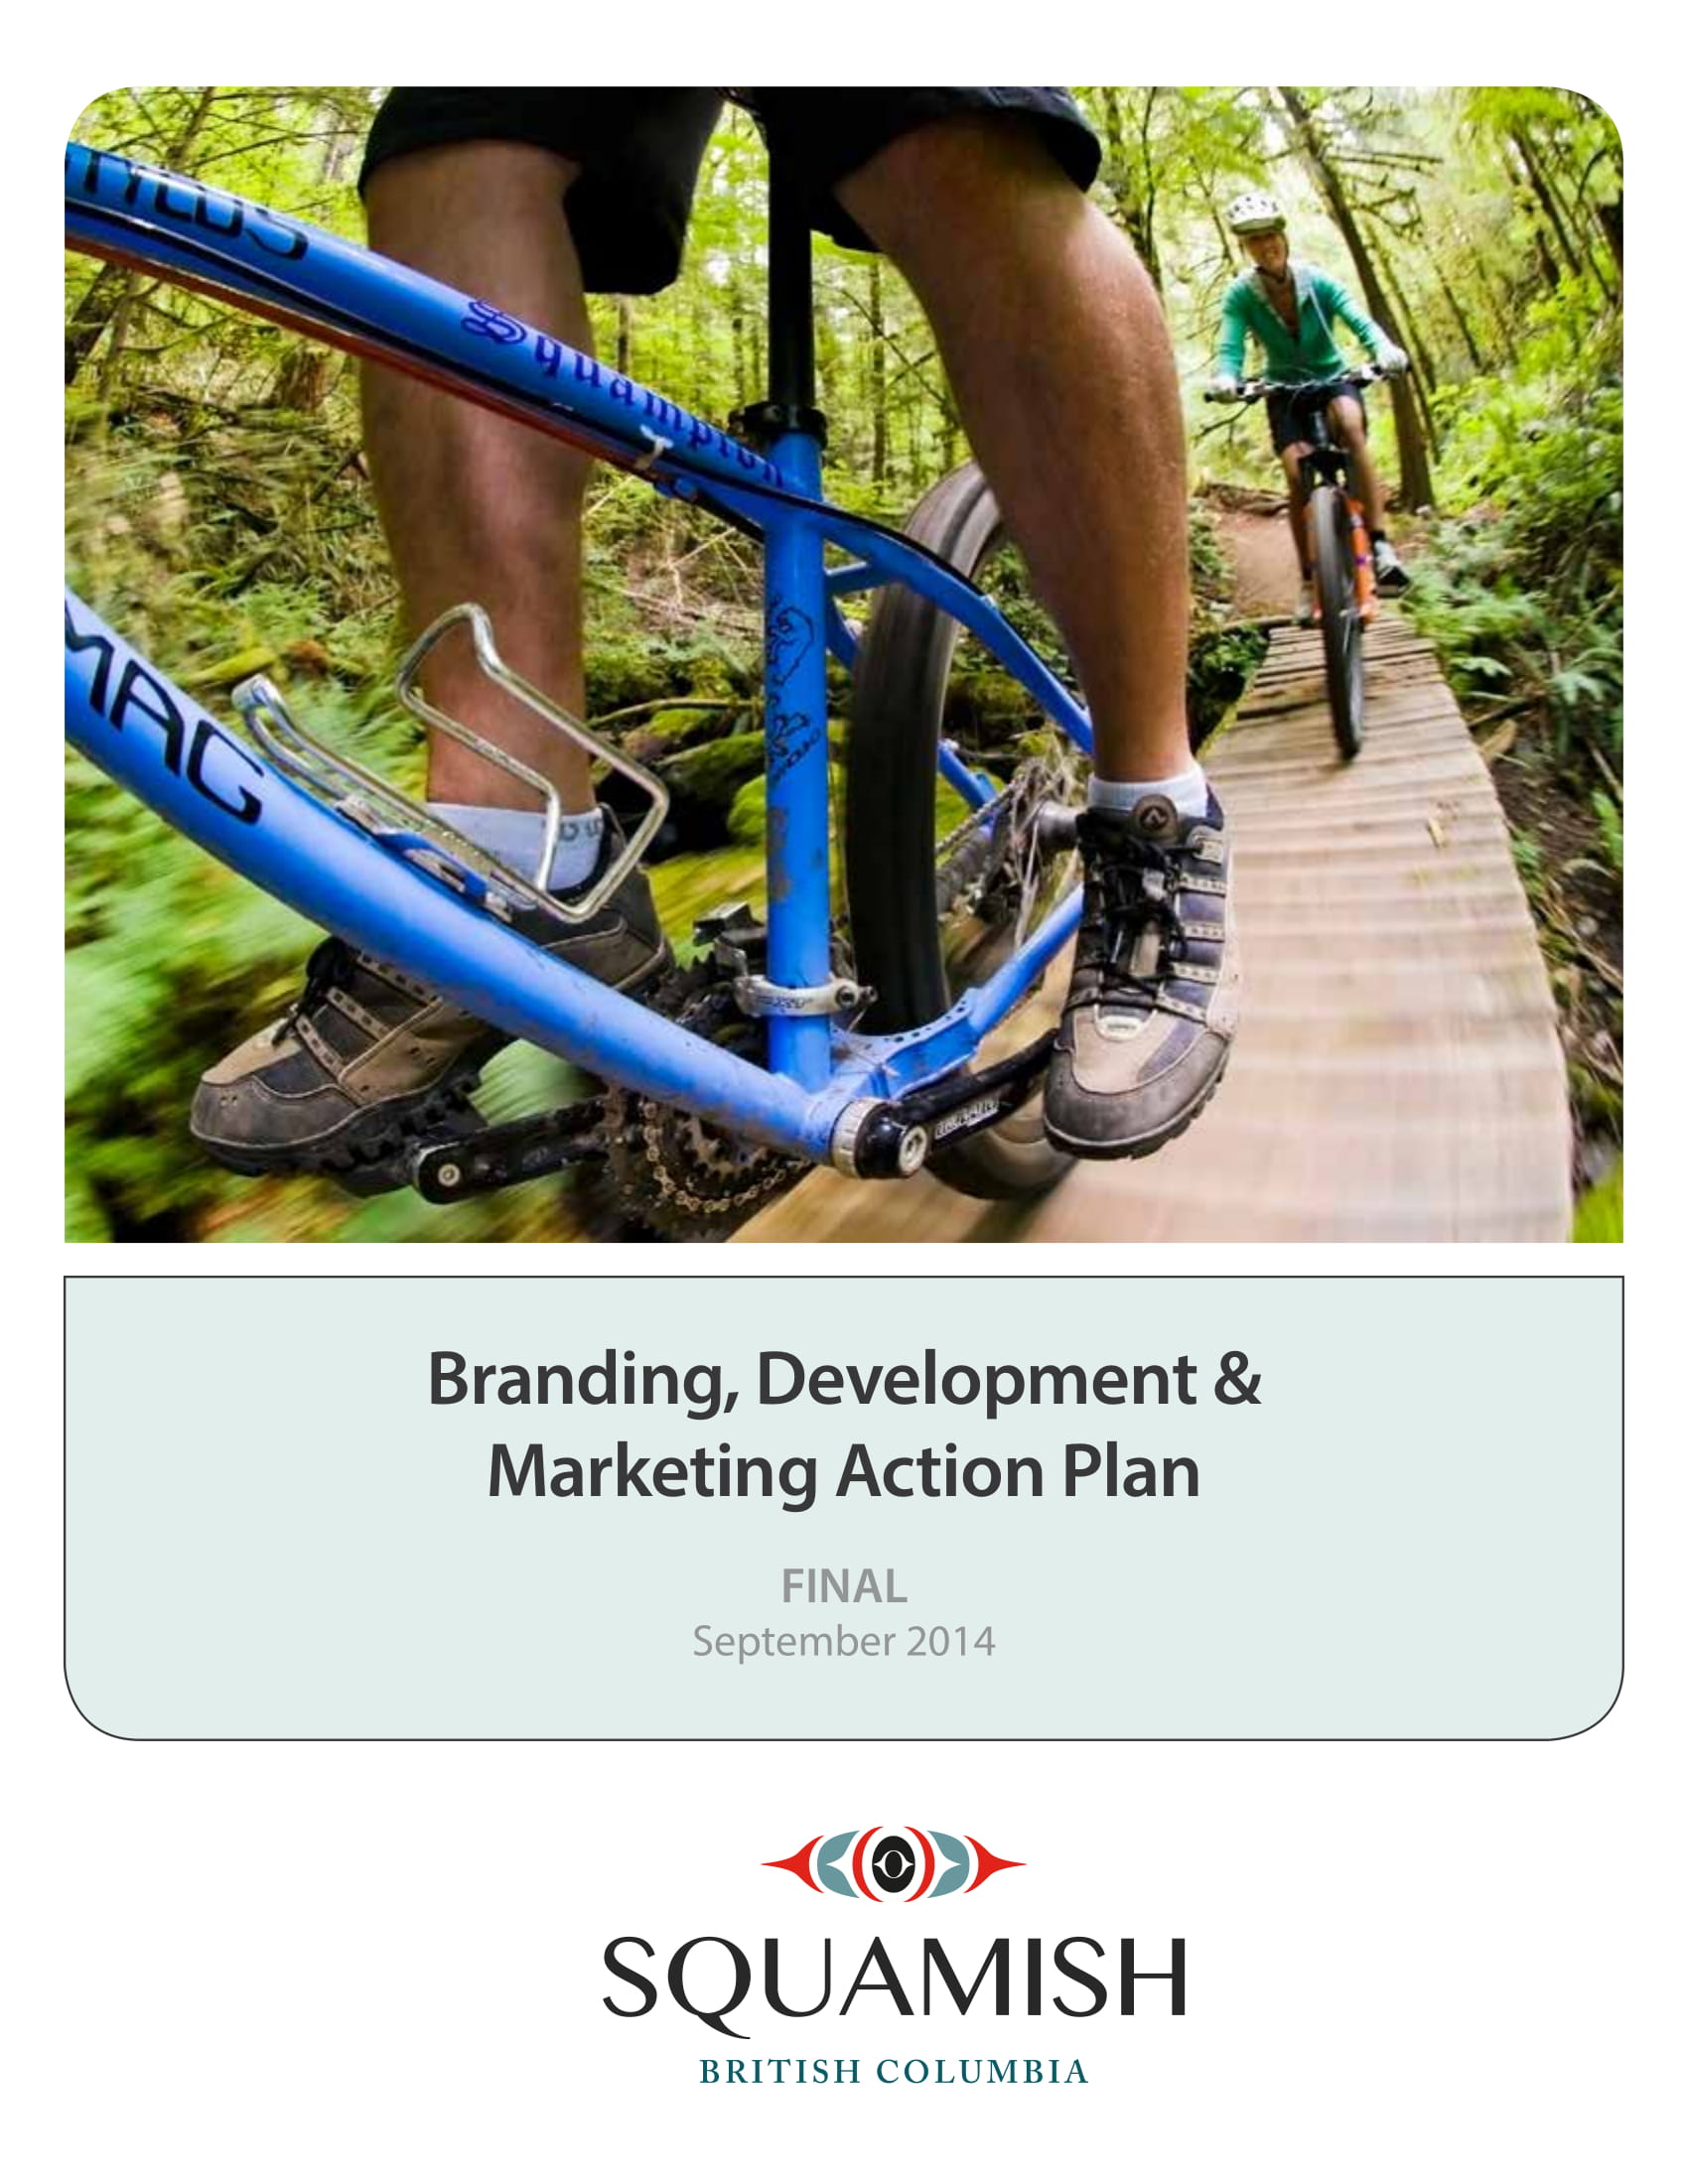 community branding development and marketing action plan example